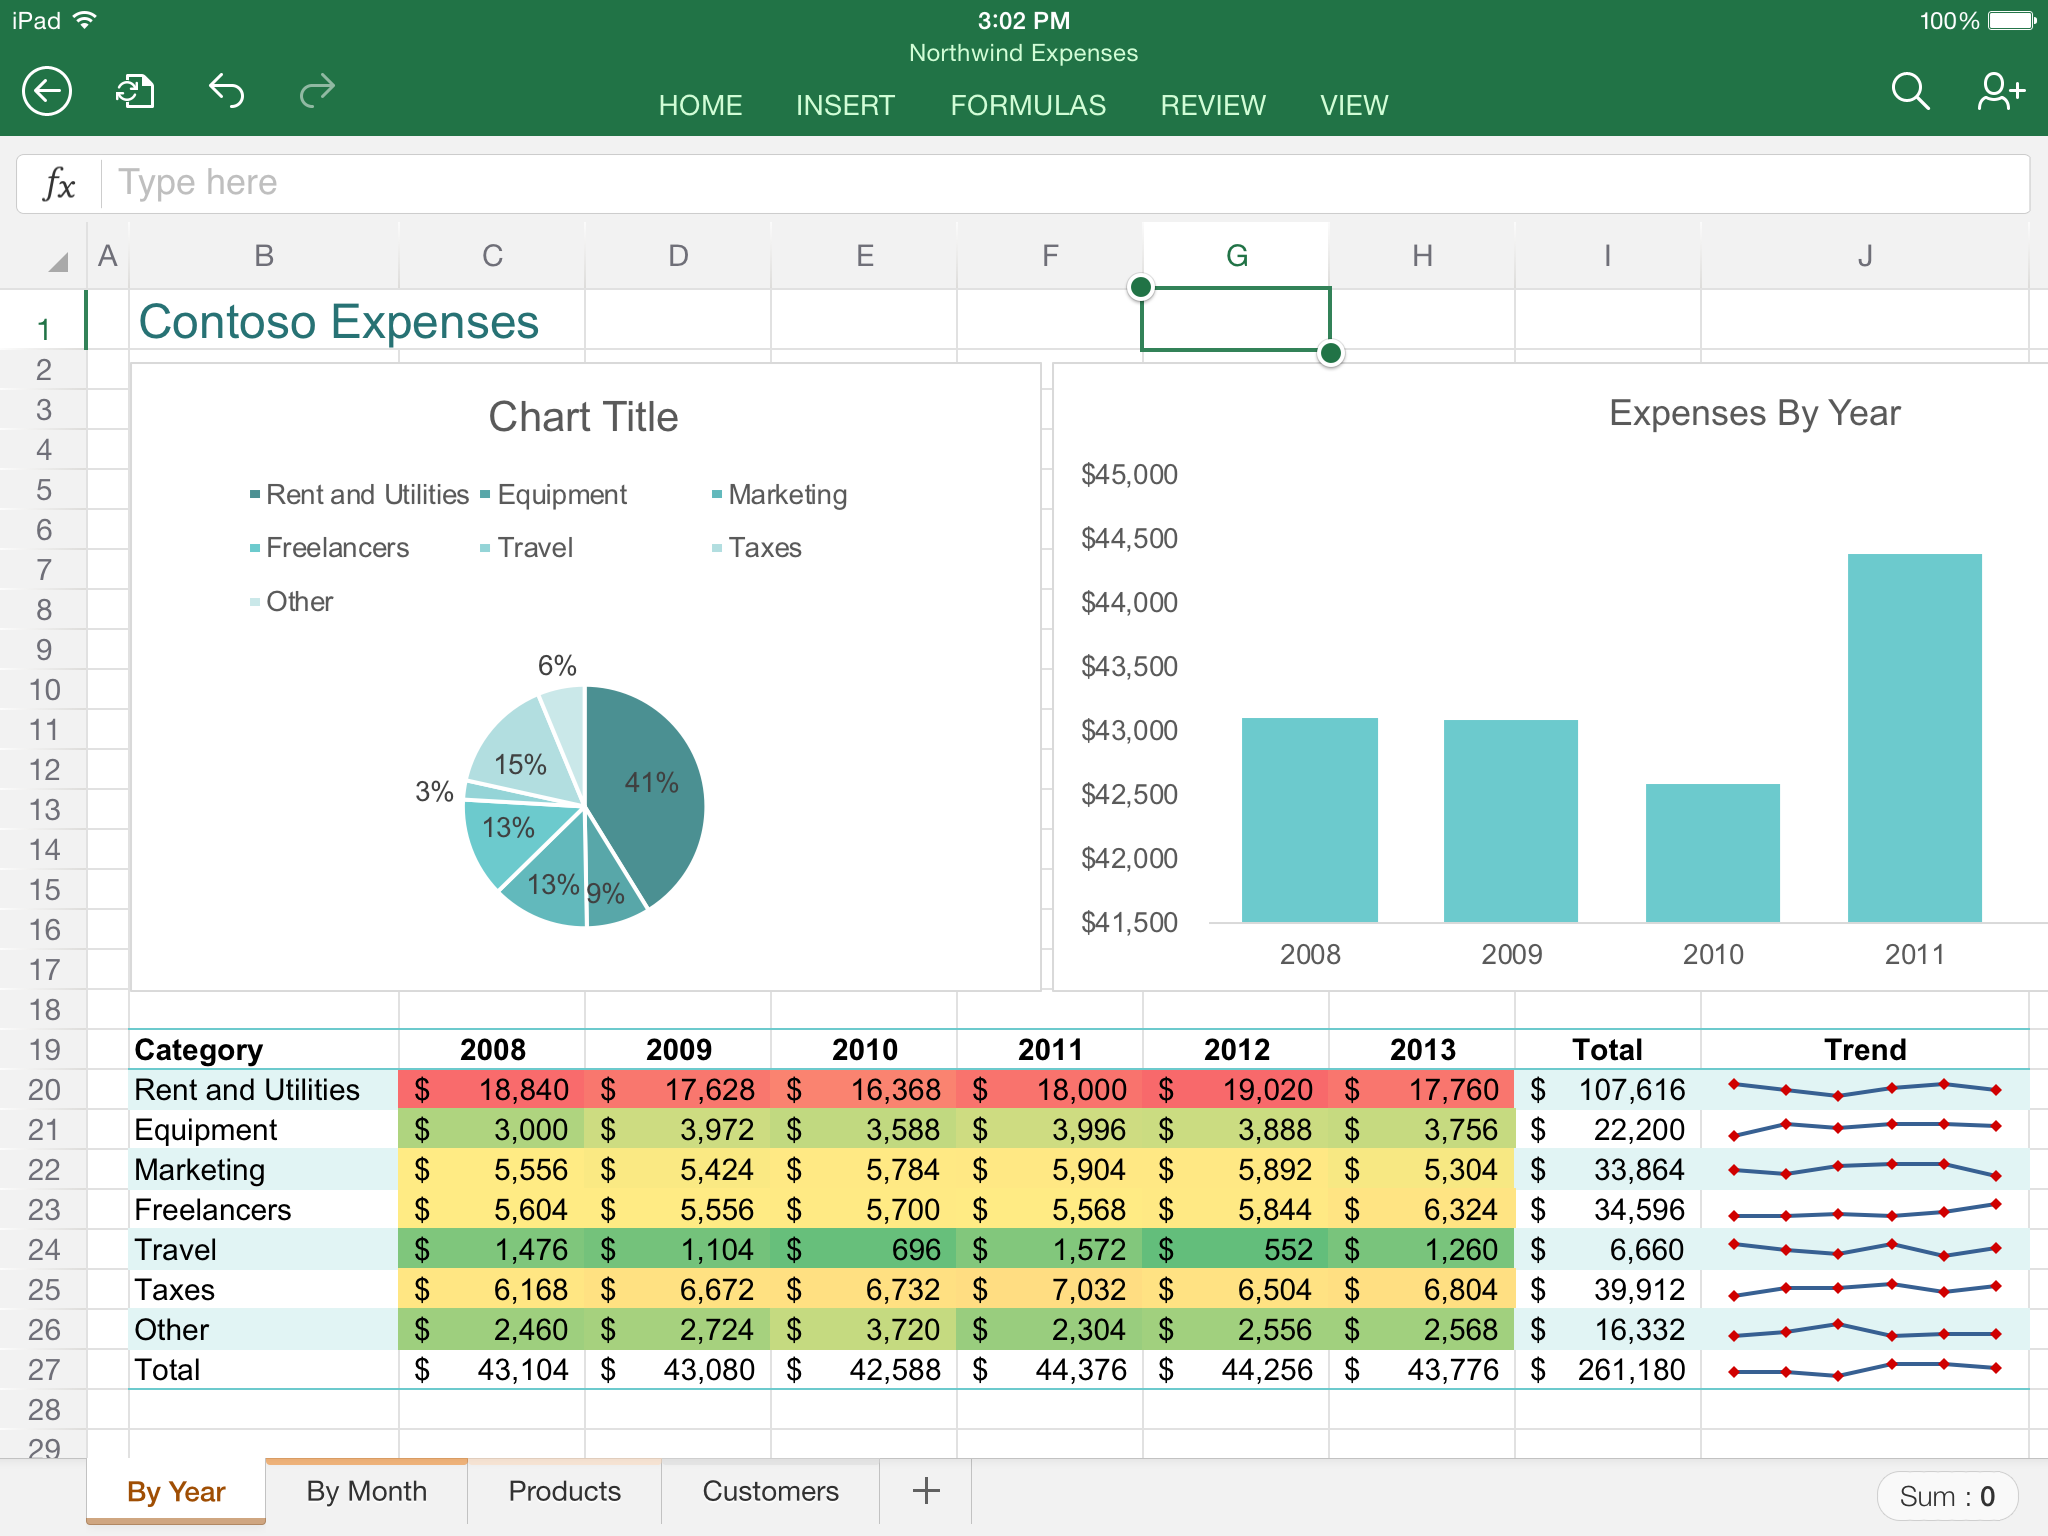 Ediblewildsus  Mesmerizing App Highlight Excel  Mobile Digital Now With Gorgeous Excel In Action With Comely Balanced Scorecard Excel Template Free Also Statistical Analysis Excel  In Addition Excel Protect Formulas And Nitro Pdf To Excel As Well As Powerview Excel  Additionally Excel Summarize Data From Youstonybrookedu With Ediblewildsus  Gorgeous App Highlight Excel  Mobile Digital Now With Comely Excel In Action And Mesmerizing Balanced Scorecard Excel Template Free Also Statistical Analysis Excel  In Addition Excel Protect Formulas From Youstonybrookedu